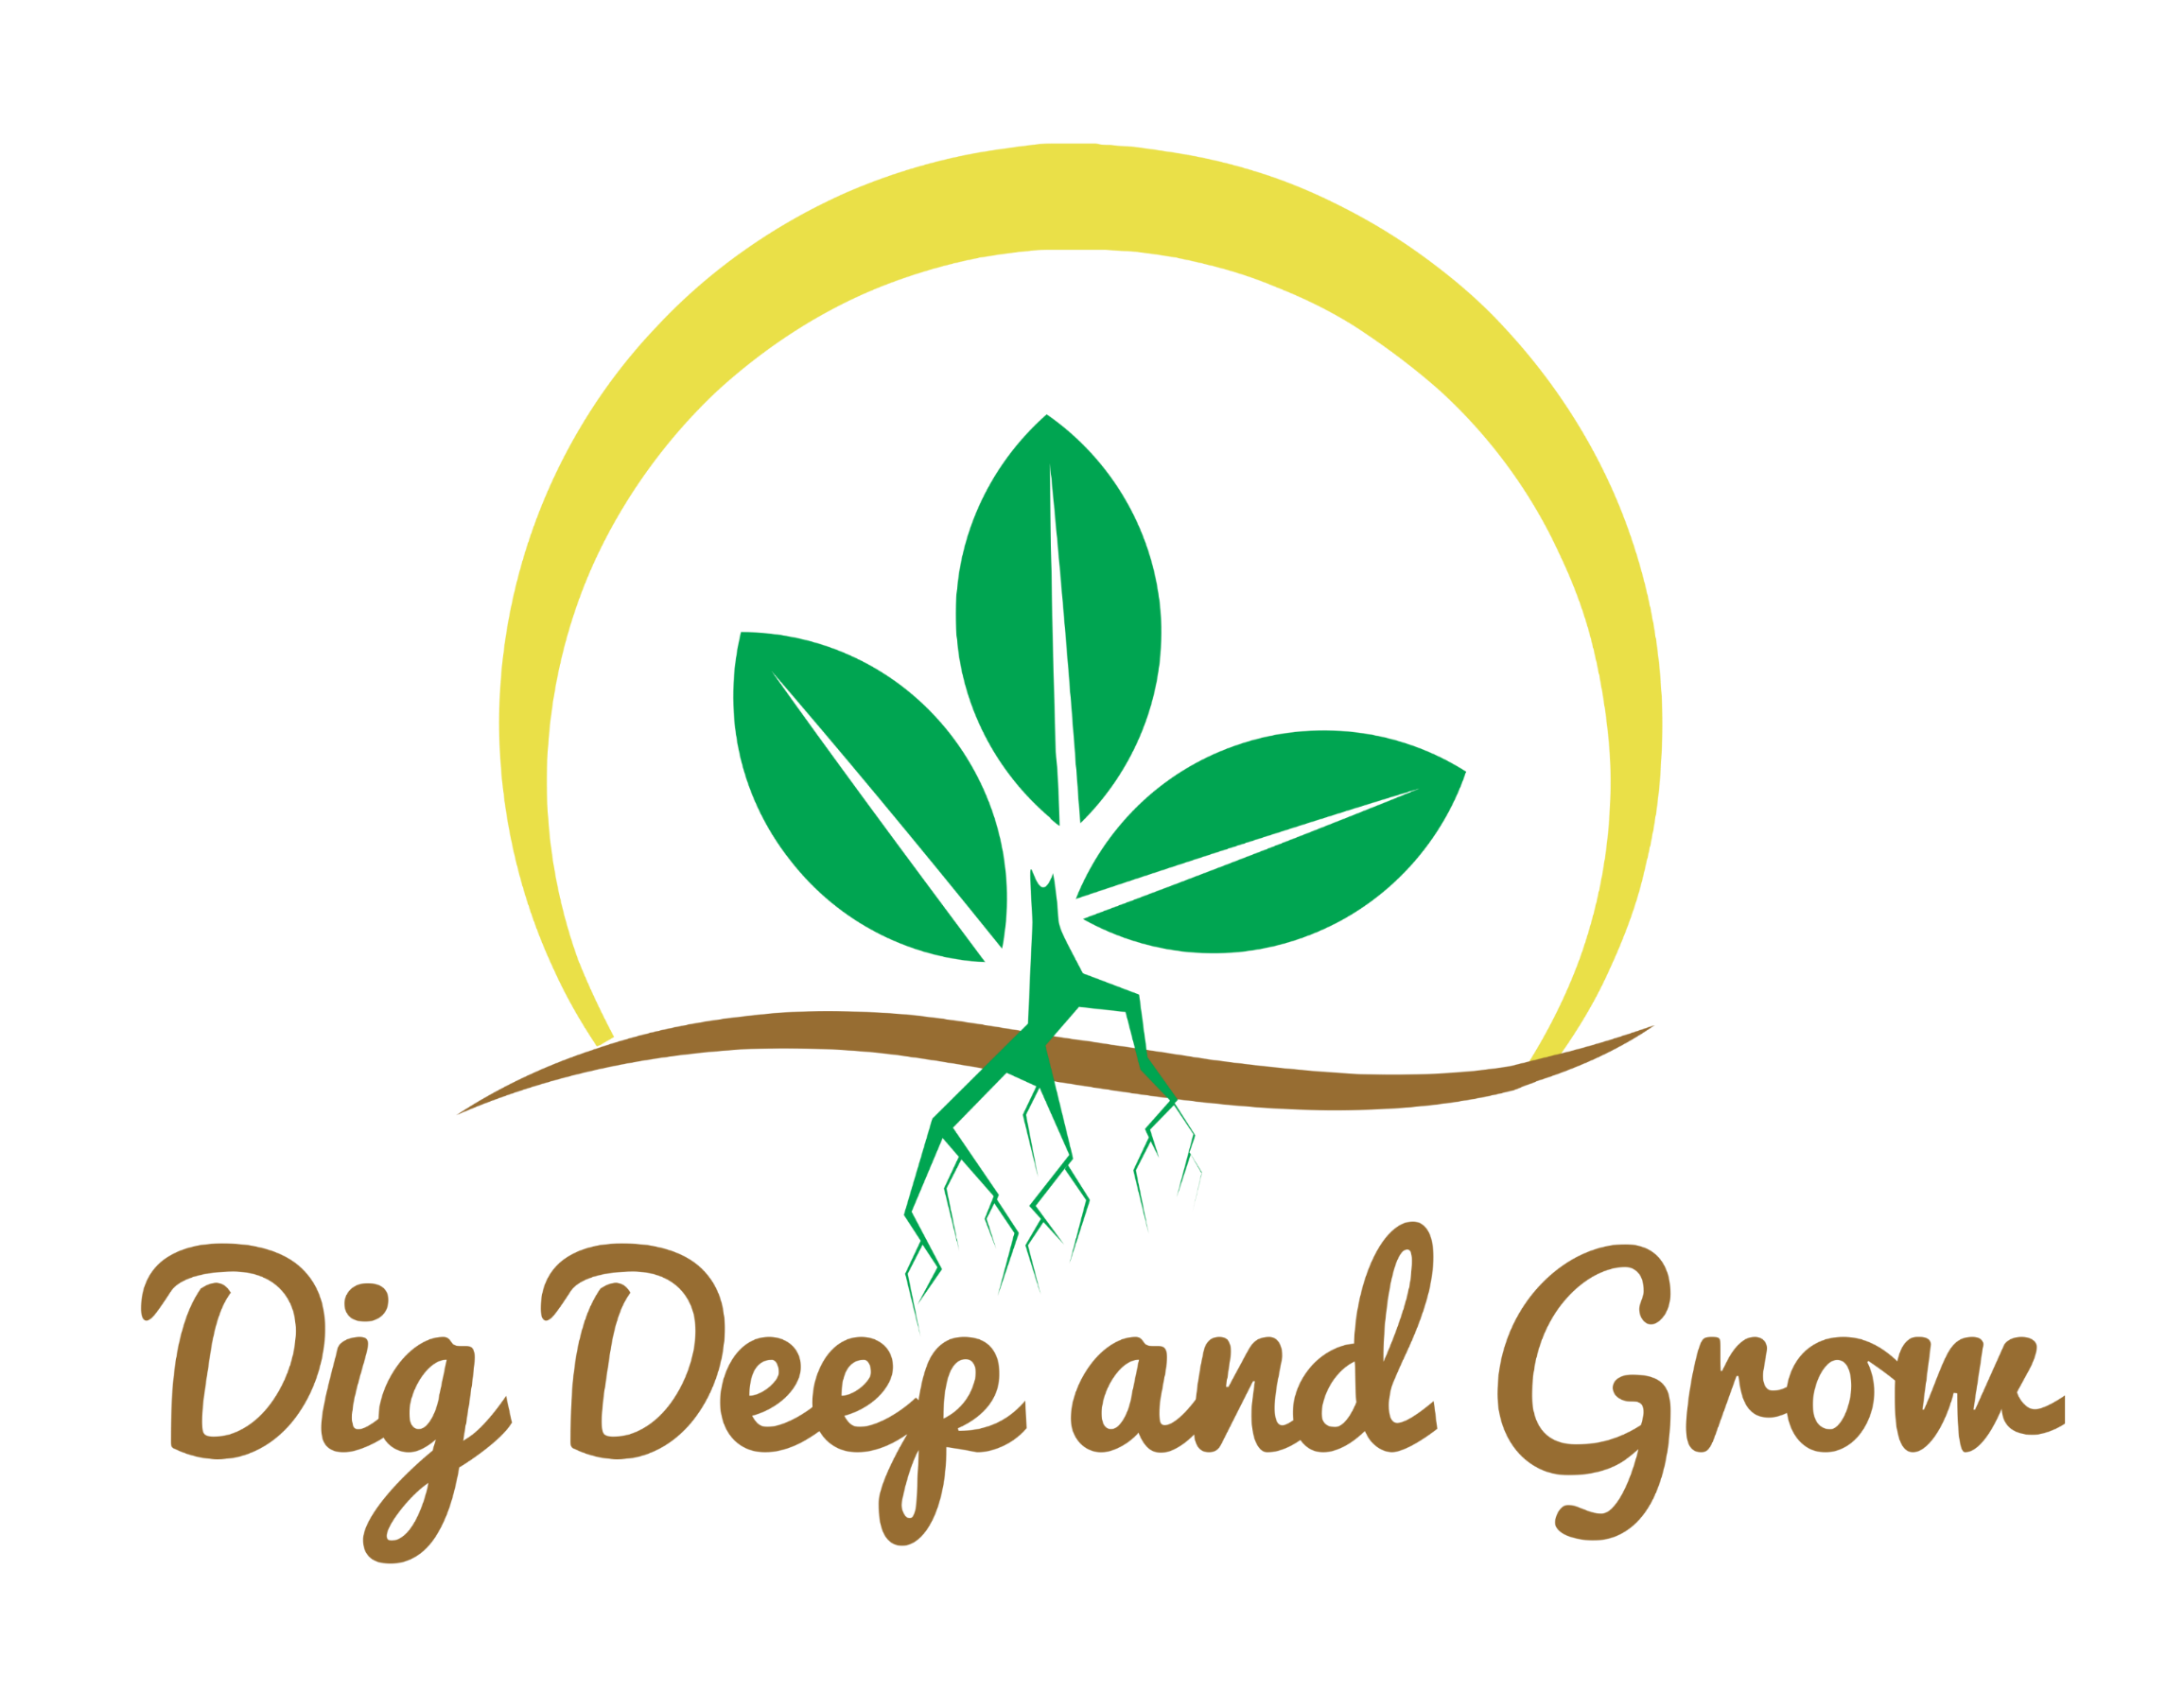 Dig Deep and Grow